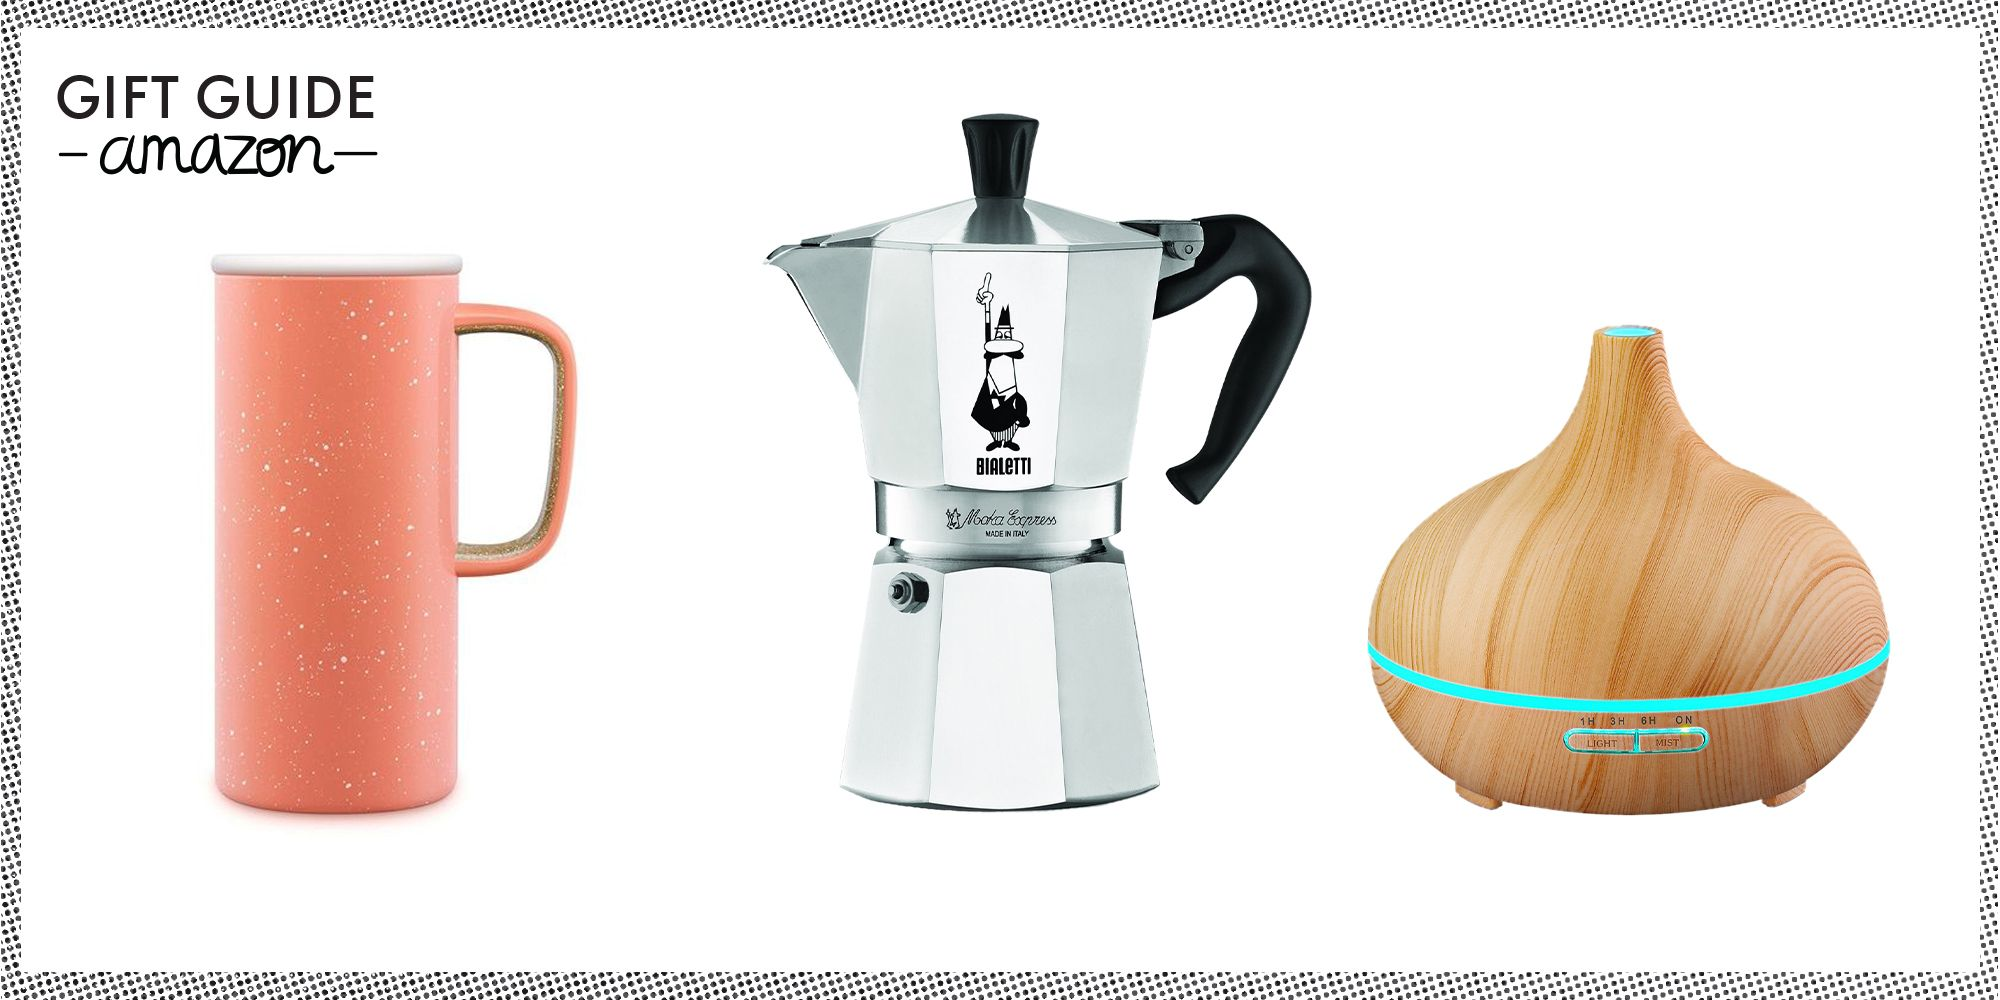 COURTESY  sc 1 st  Elle & 26 Best Amazon Prime Gifts - Top Gifts to Buy From Amazon Prime